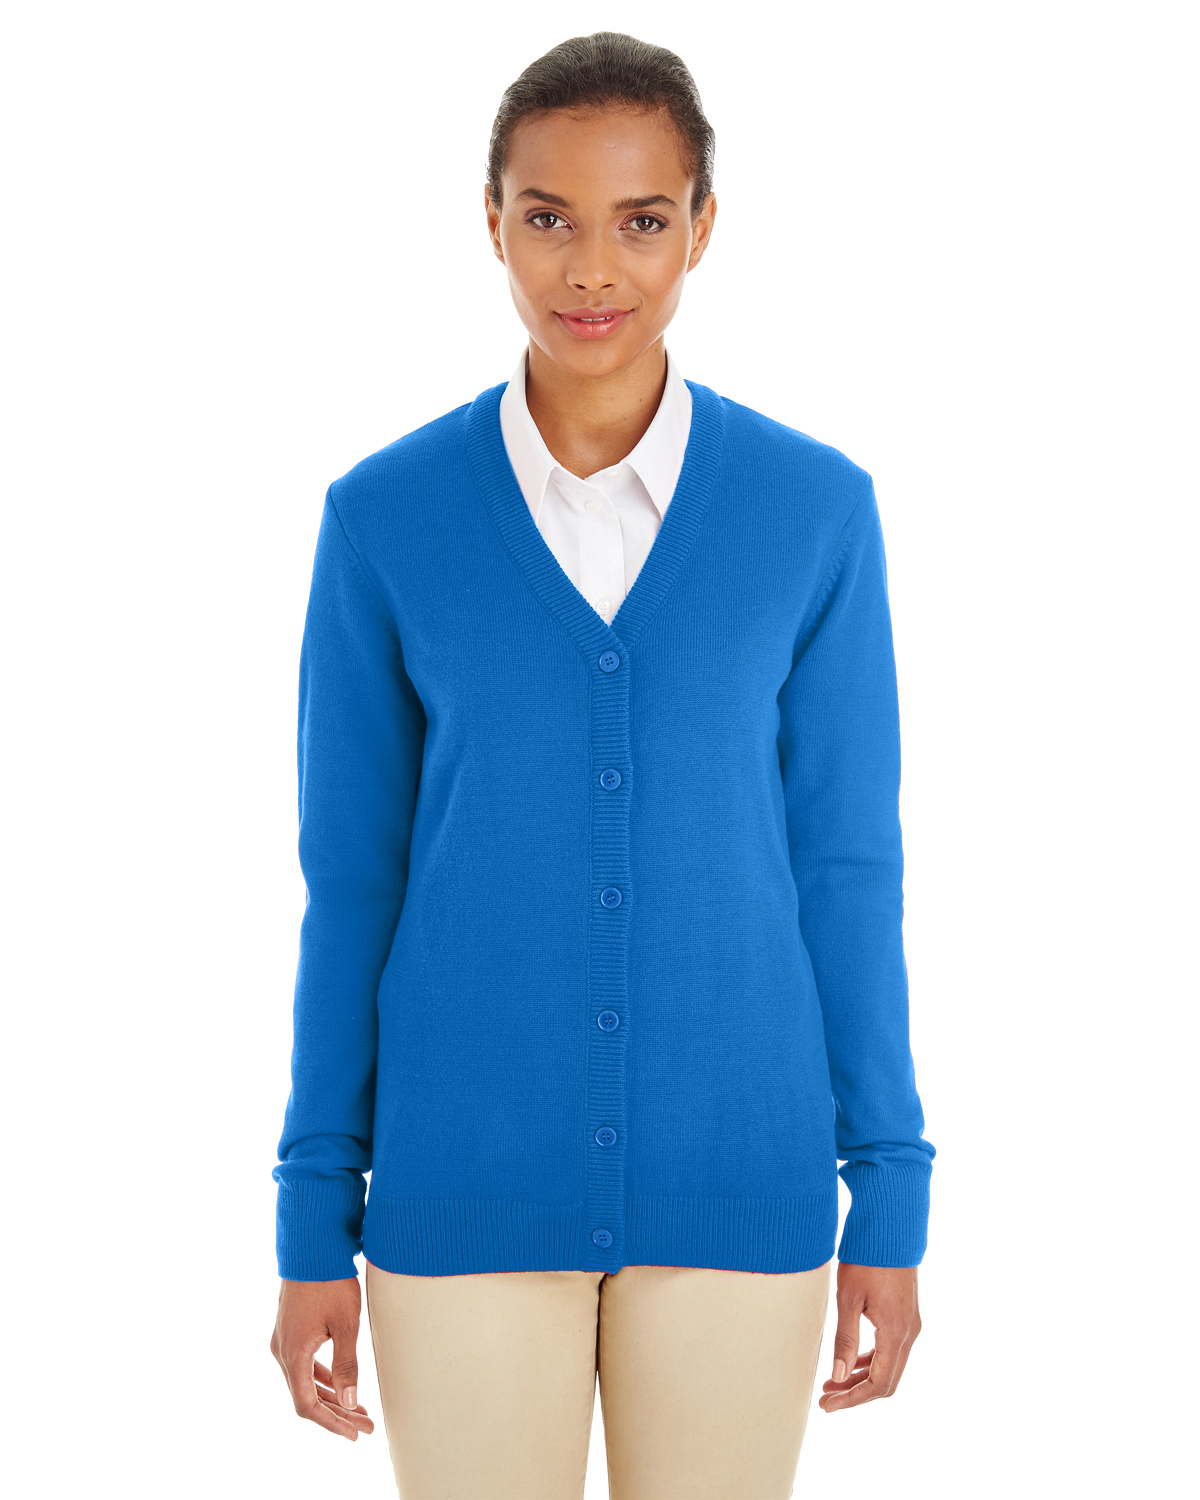 Harriton - M425W Ladies' Pilbloc V-Neck Button Cardigan Sweater, Pensacola, Embroidery, Screen Printing, Logo Masters International